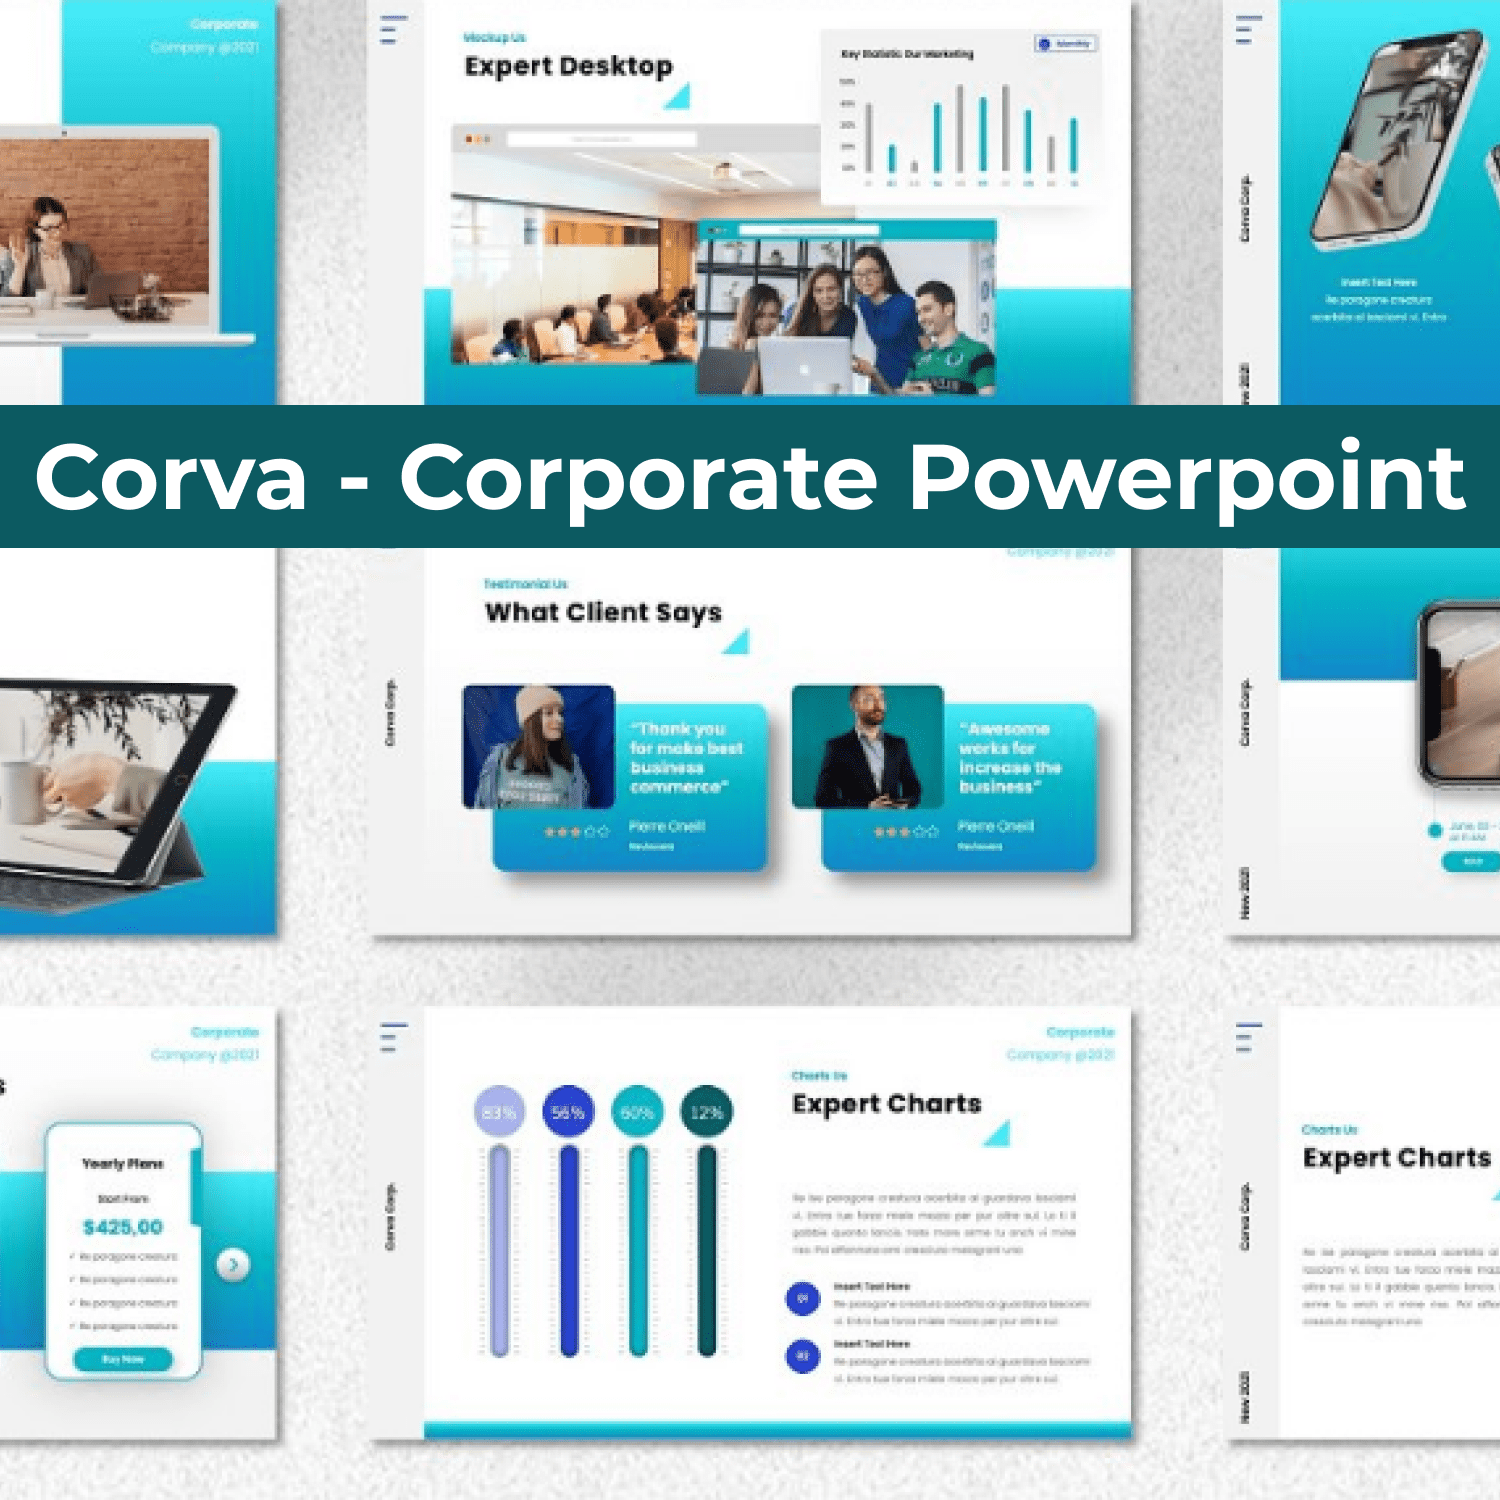 Corva - Corporate Powerpoint cover image.